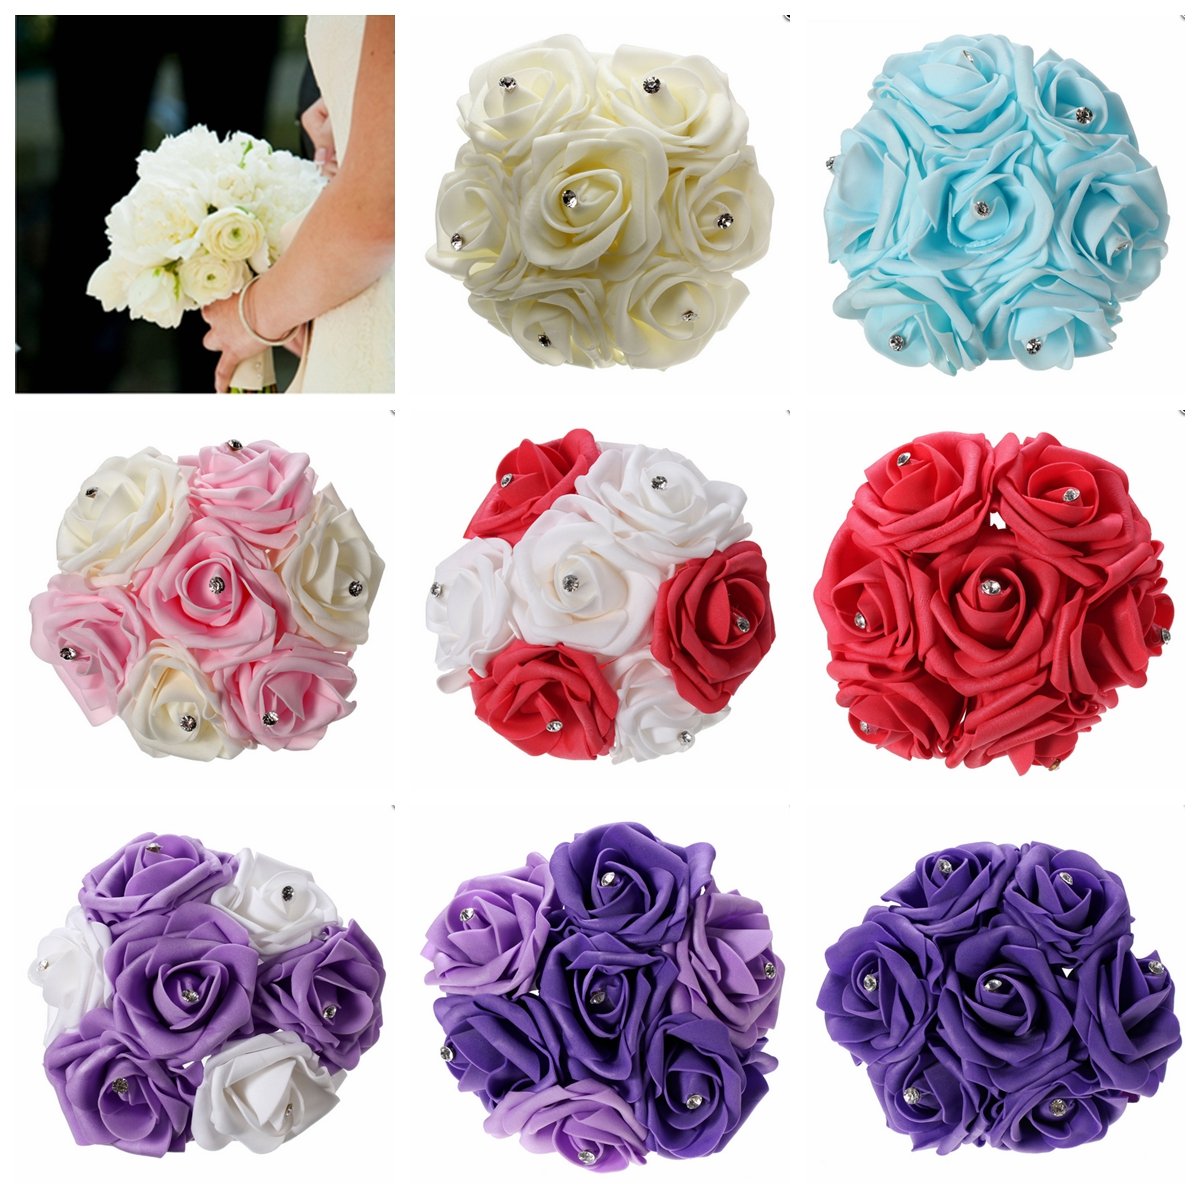 1 Bunch Aartificial Rose Flower Craft Flower Bridal Rhinestone Crystal Bouquet Wedding Flowers Party Decor